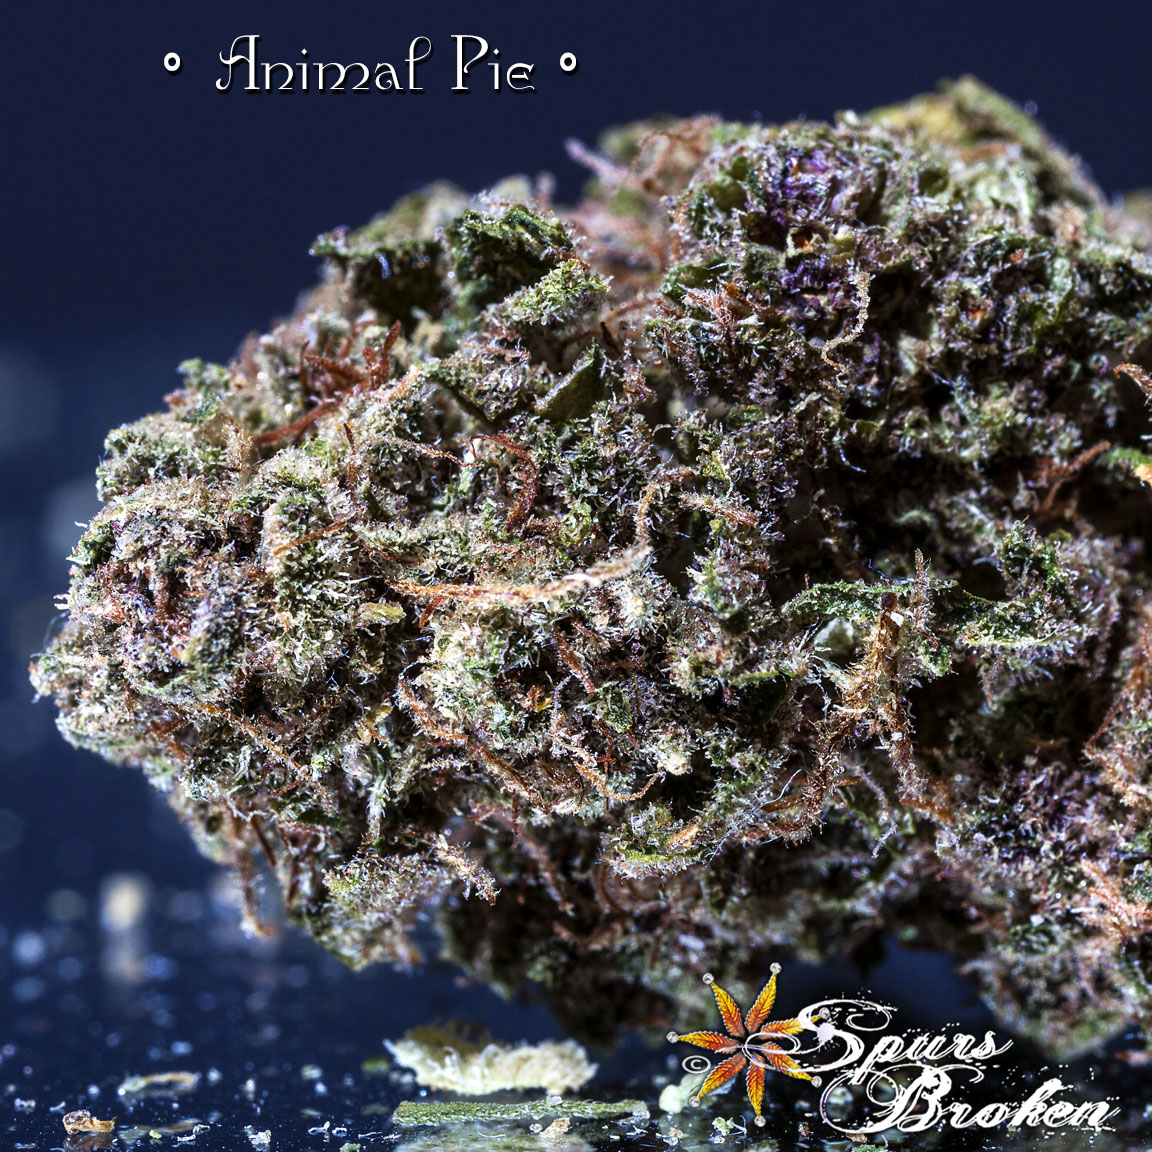 Animal Pie - Cannabis Macro Photography by Spurs Broken (Robert R. Sanders)